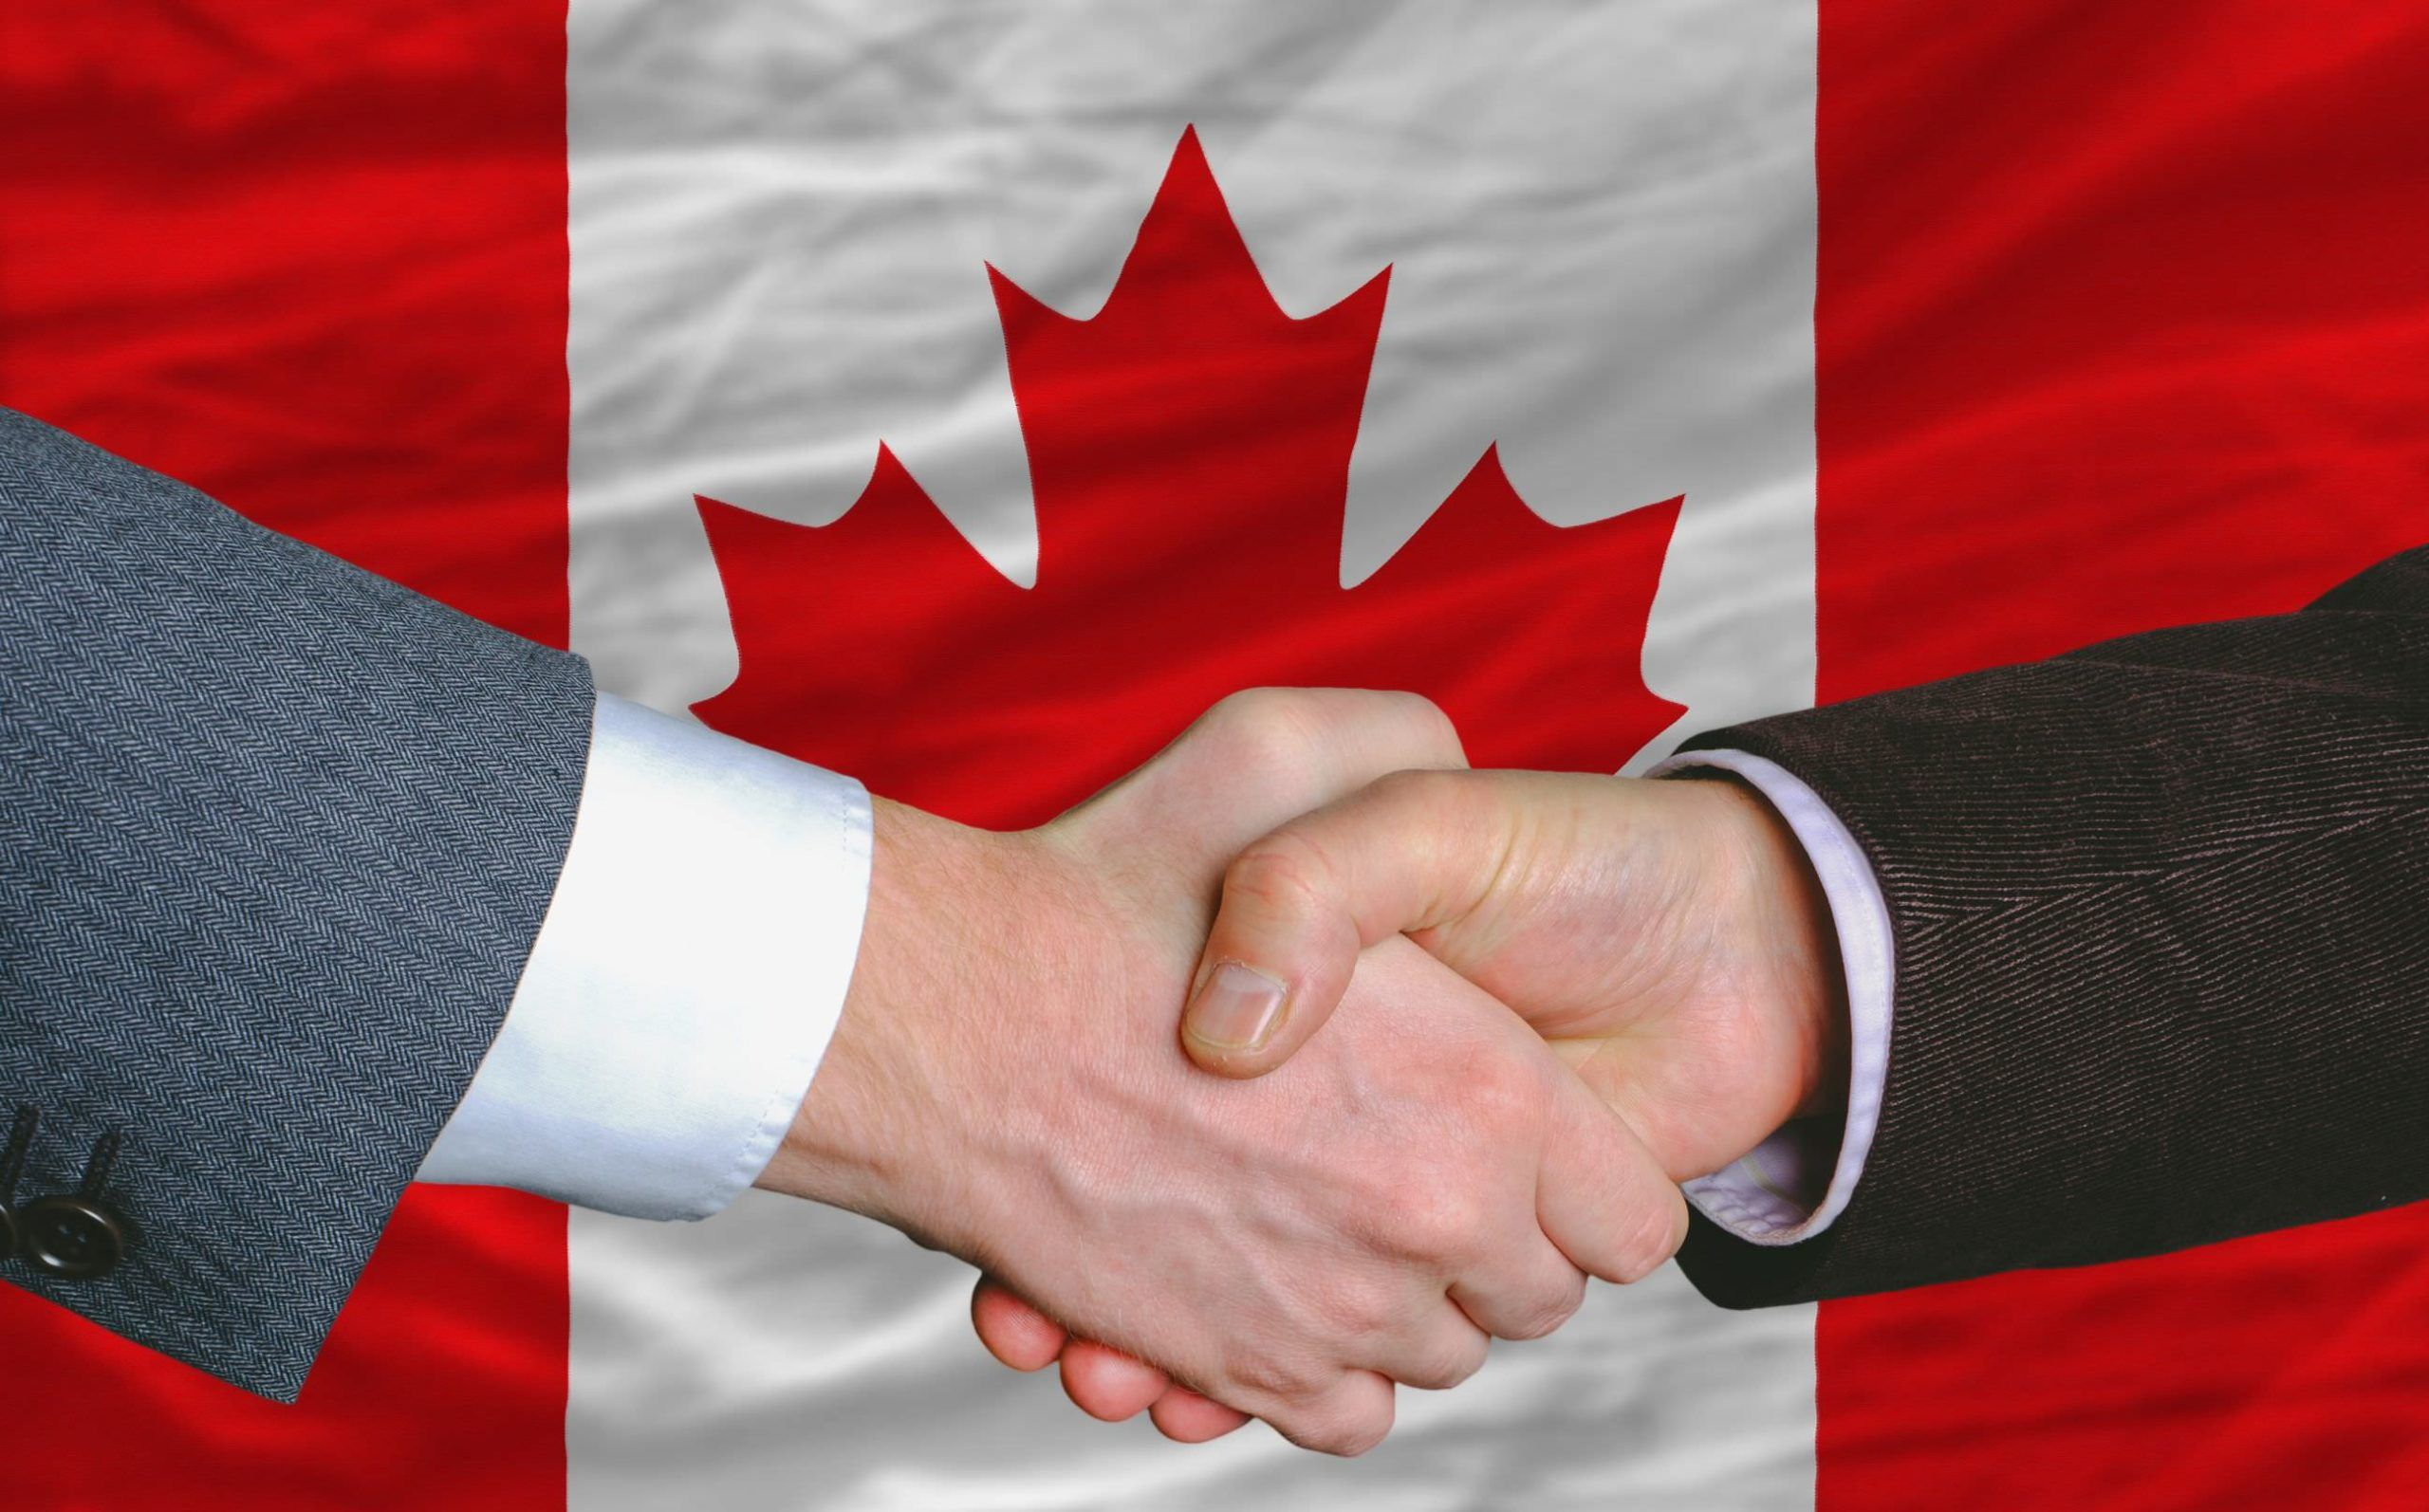 , Aurora Cannabis to acquire Canadian rival MedReleaf for CA$3.2B in industry's biggest deal